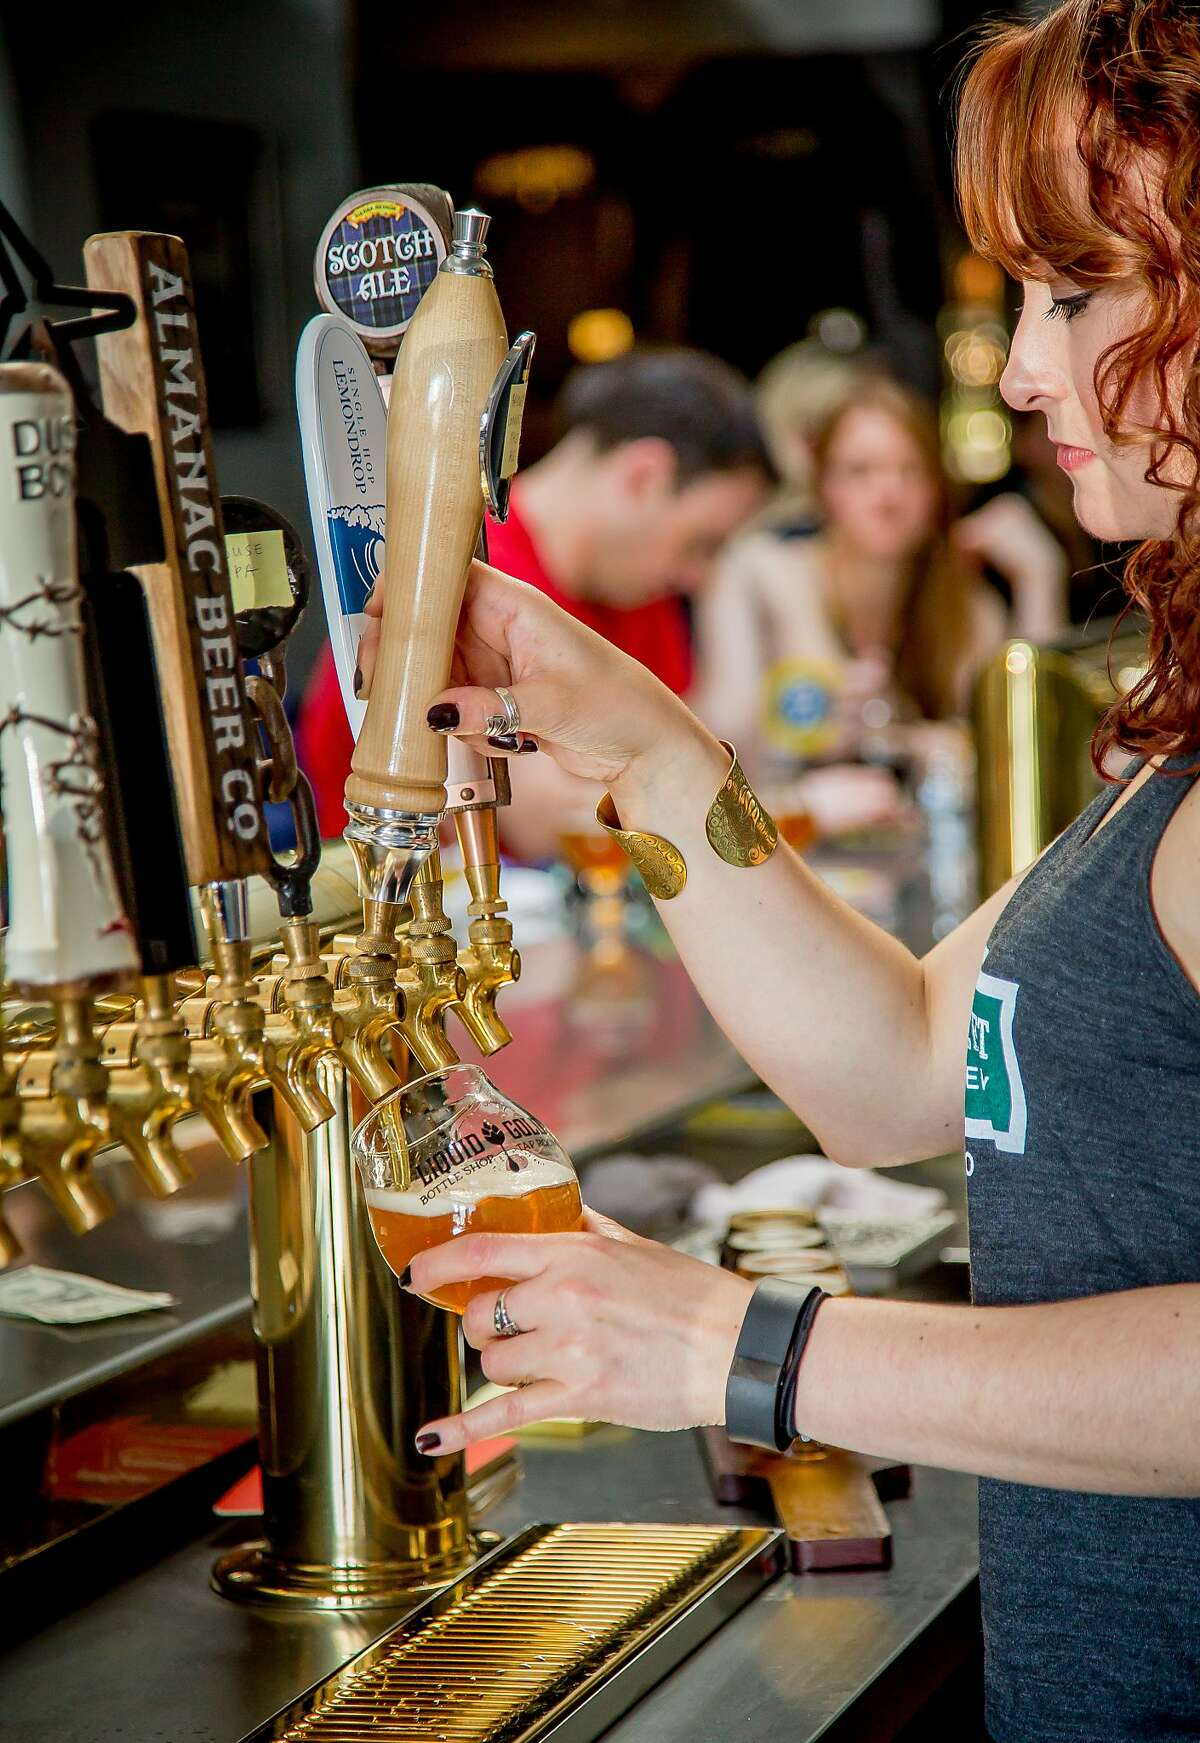 Bartender Kayleigh Bender pours a beer at Liquid Gold in San Francisco, Calif., on Sunday, April 12th, 2015.